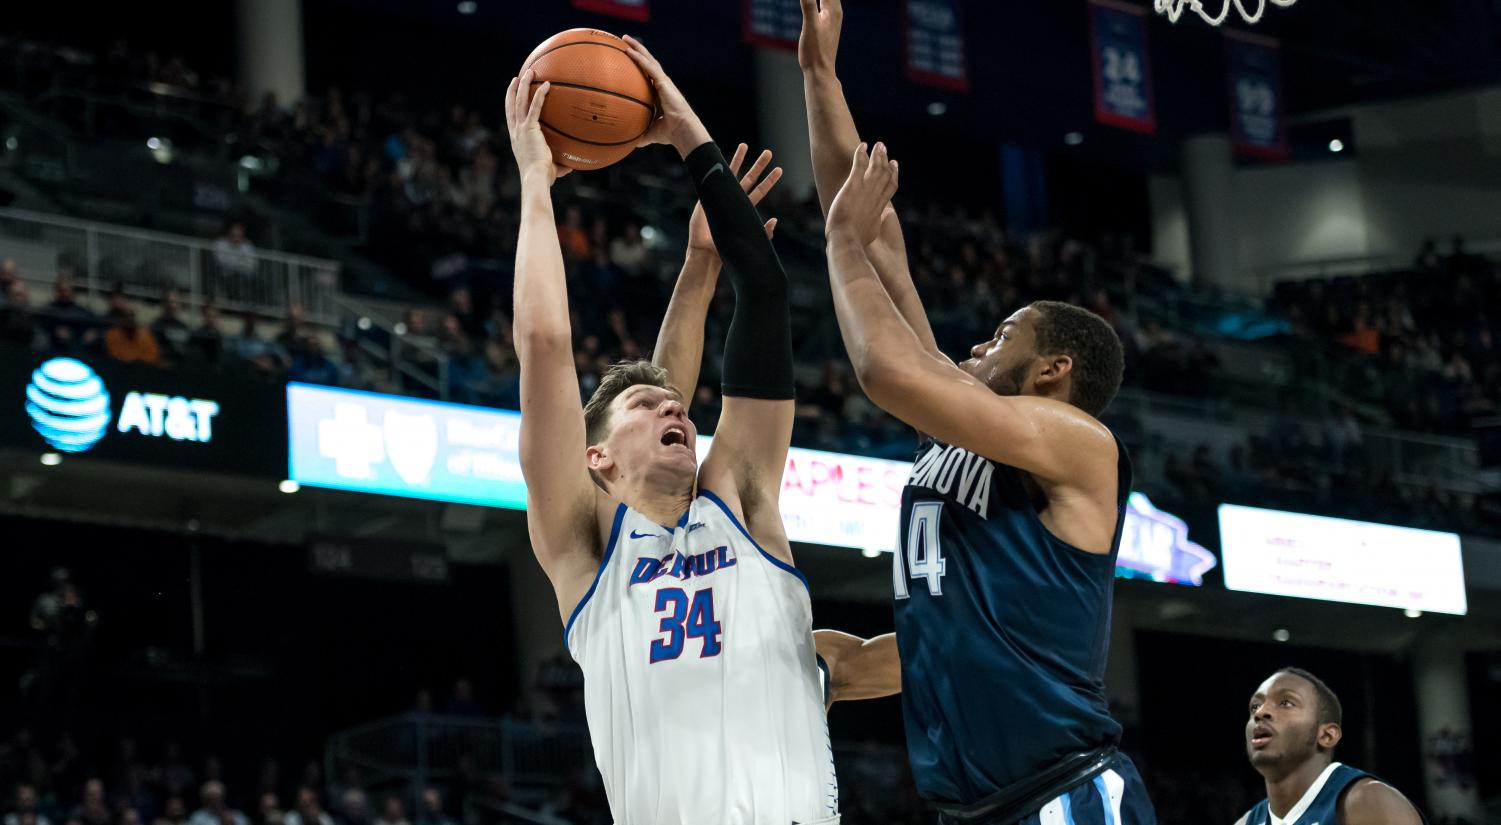 Marin Maric had a double-double in DePaul's first Big East win Saturday at St. John's (Konrad Markowski / The DePaulia)